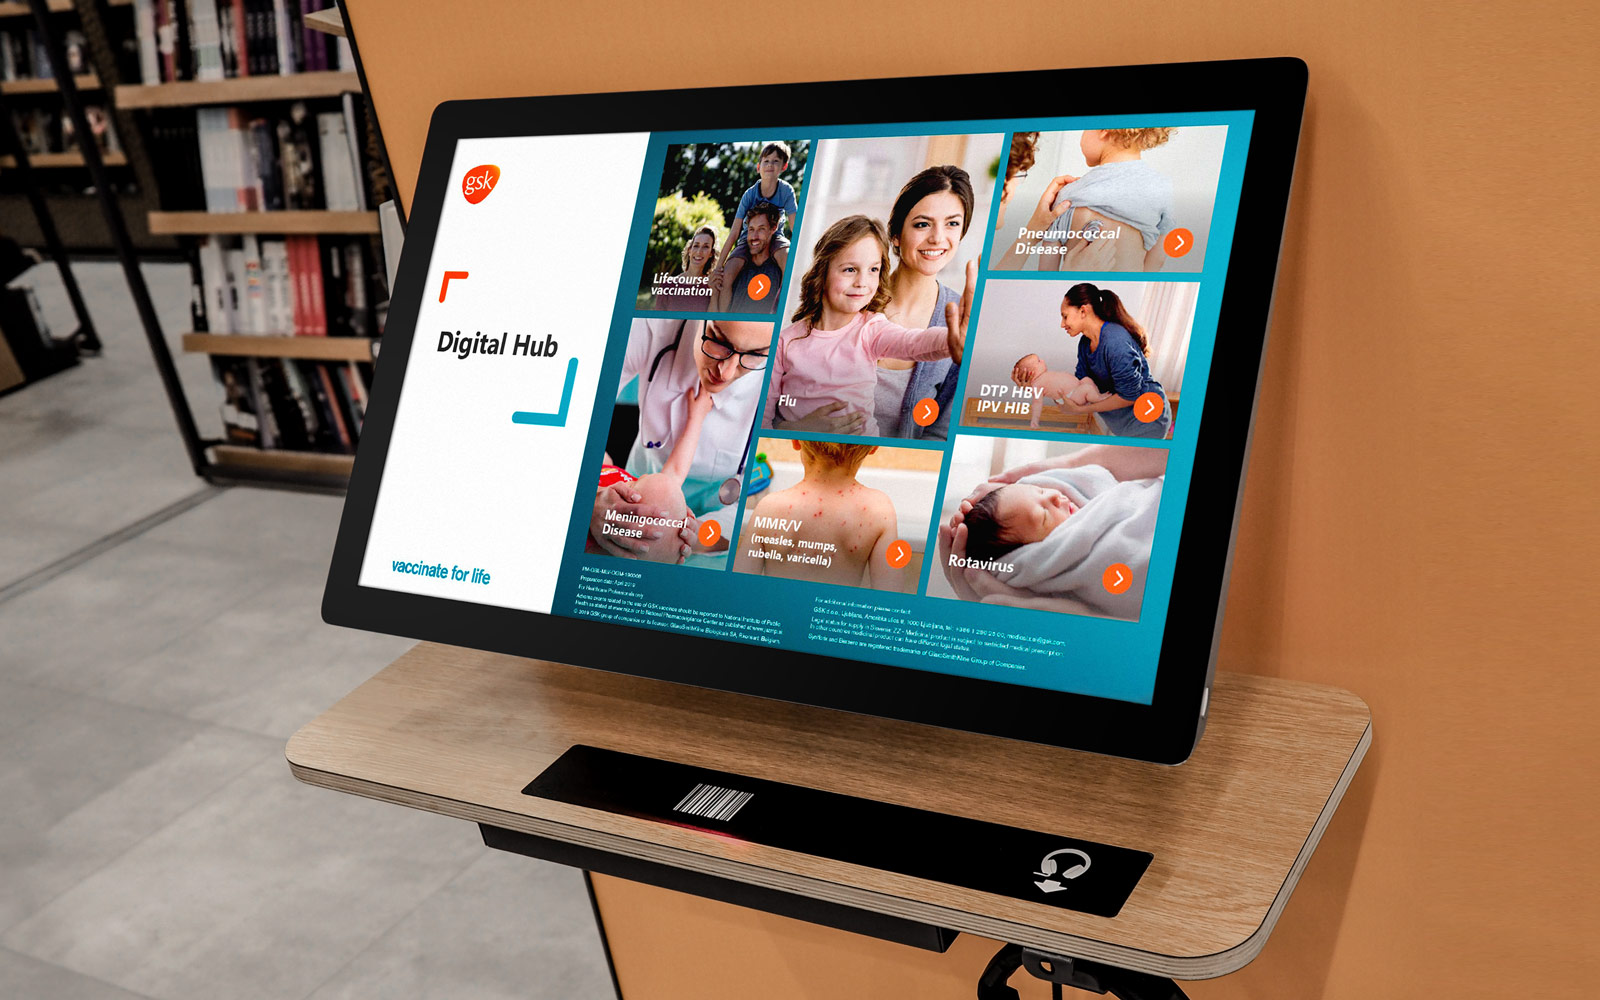 GSK interactive touchscreen display software digital hub page shown on large monitor in library